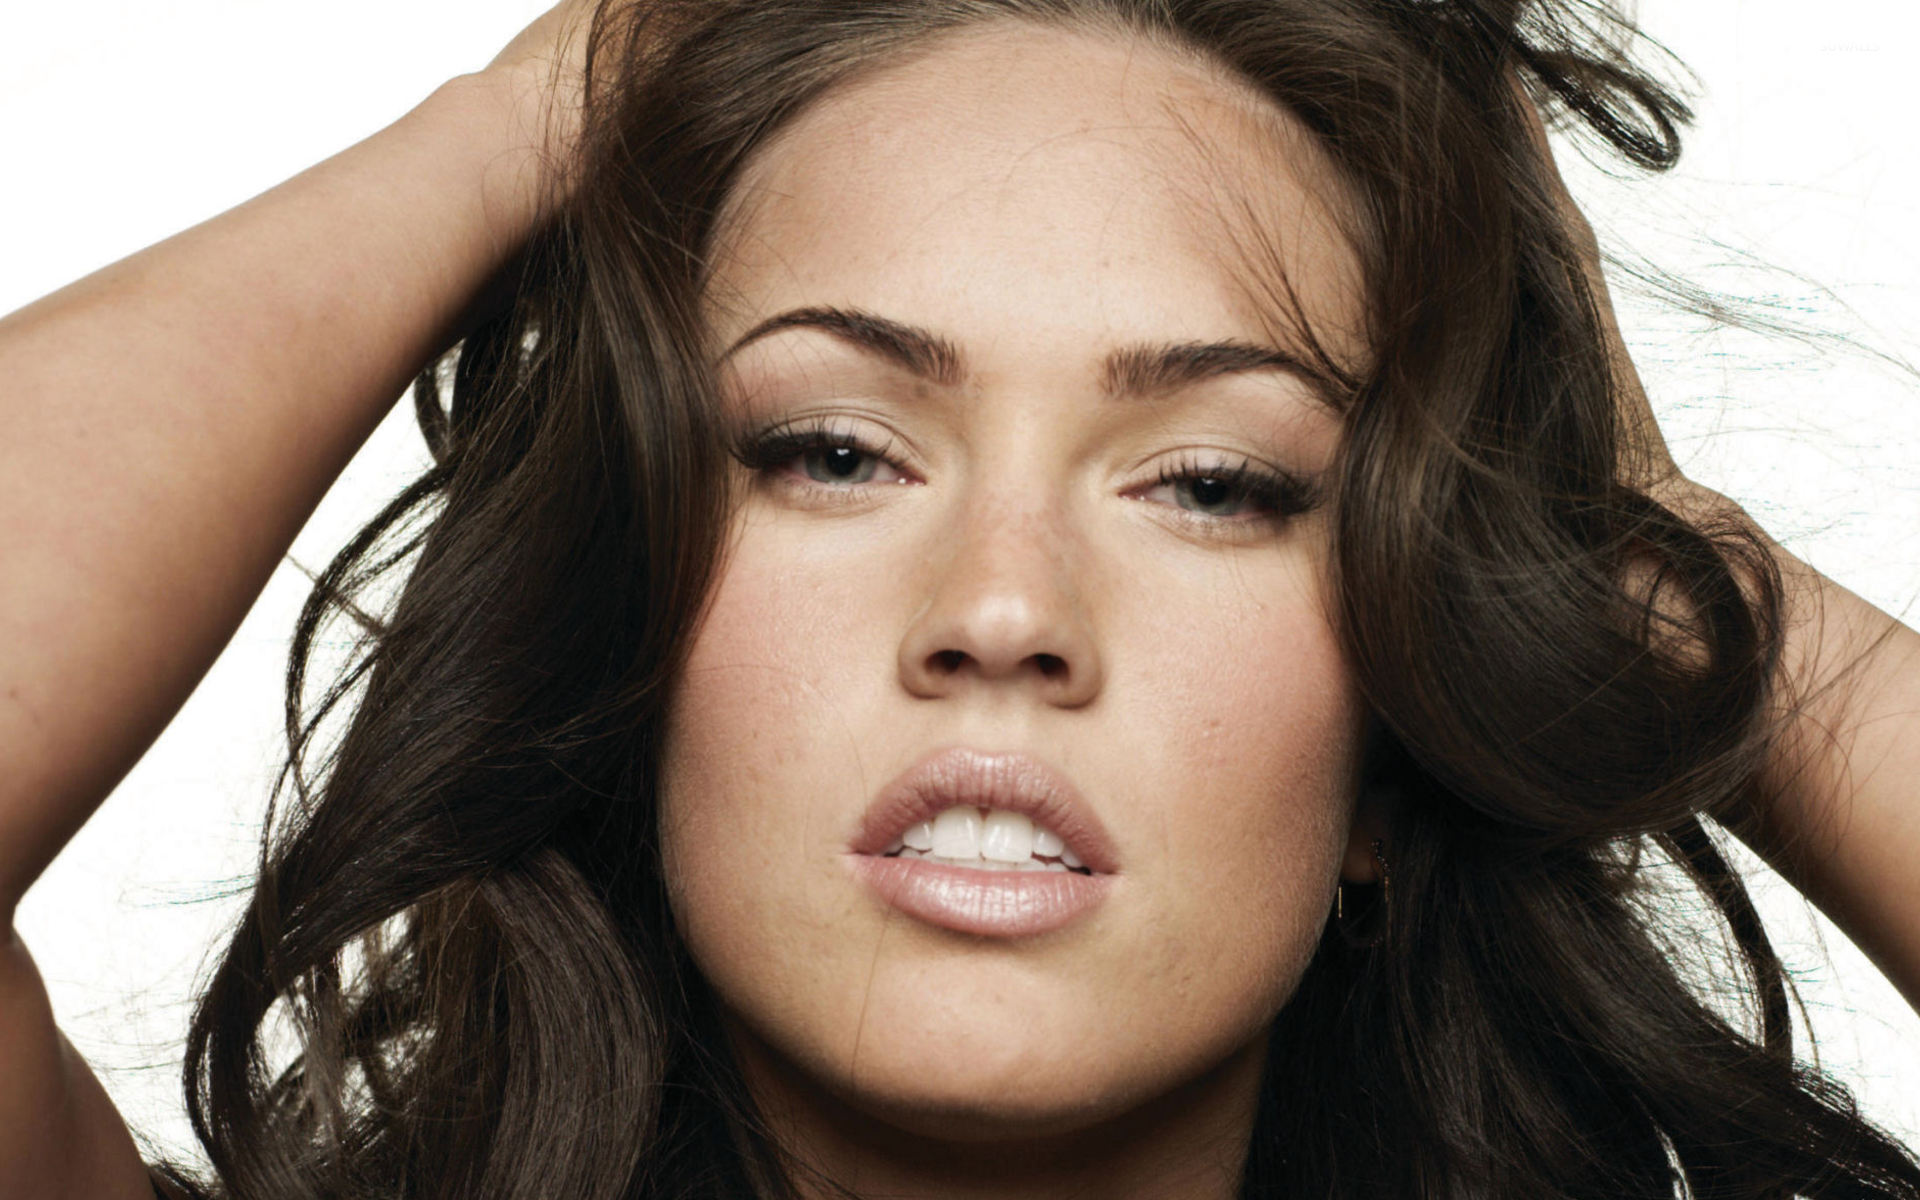 Megan Fox wallpaper 1680x1050 1680x1050